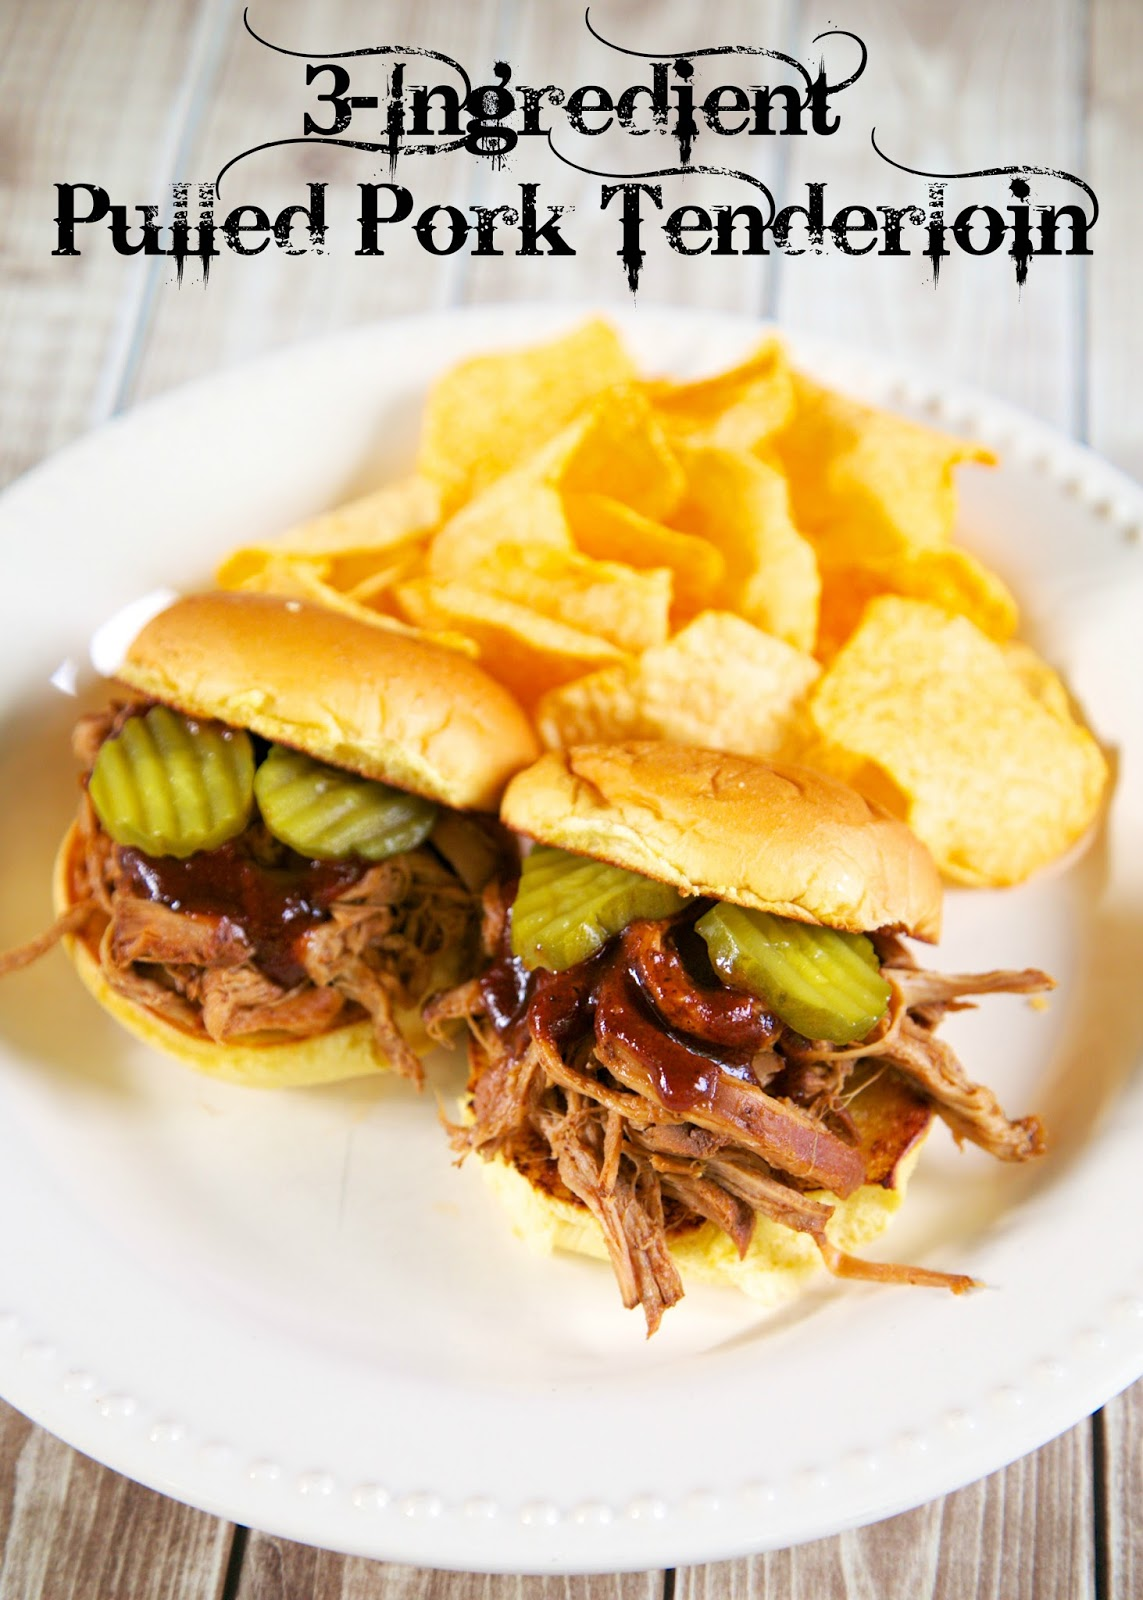 3 ingredient pulled pork tenderloin